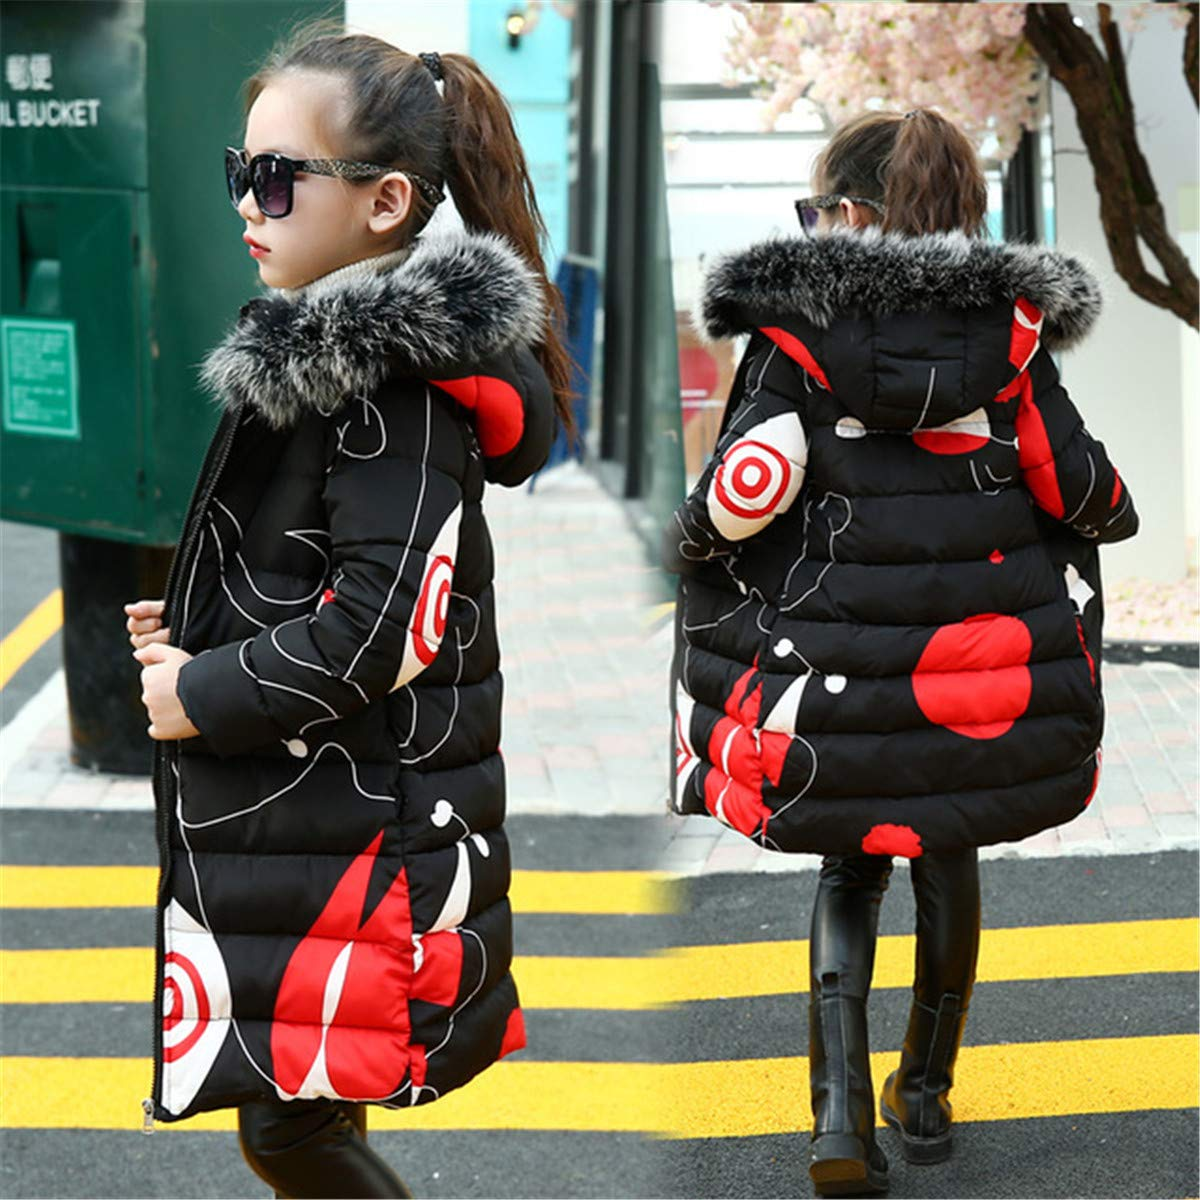 Meridiaga Children Down Jacket Winter Jacket for Girls Thick Cotton Kids Print Outerwears for Jacket Warm Coat